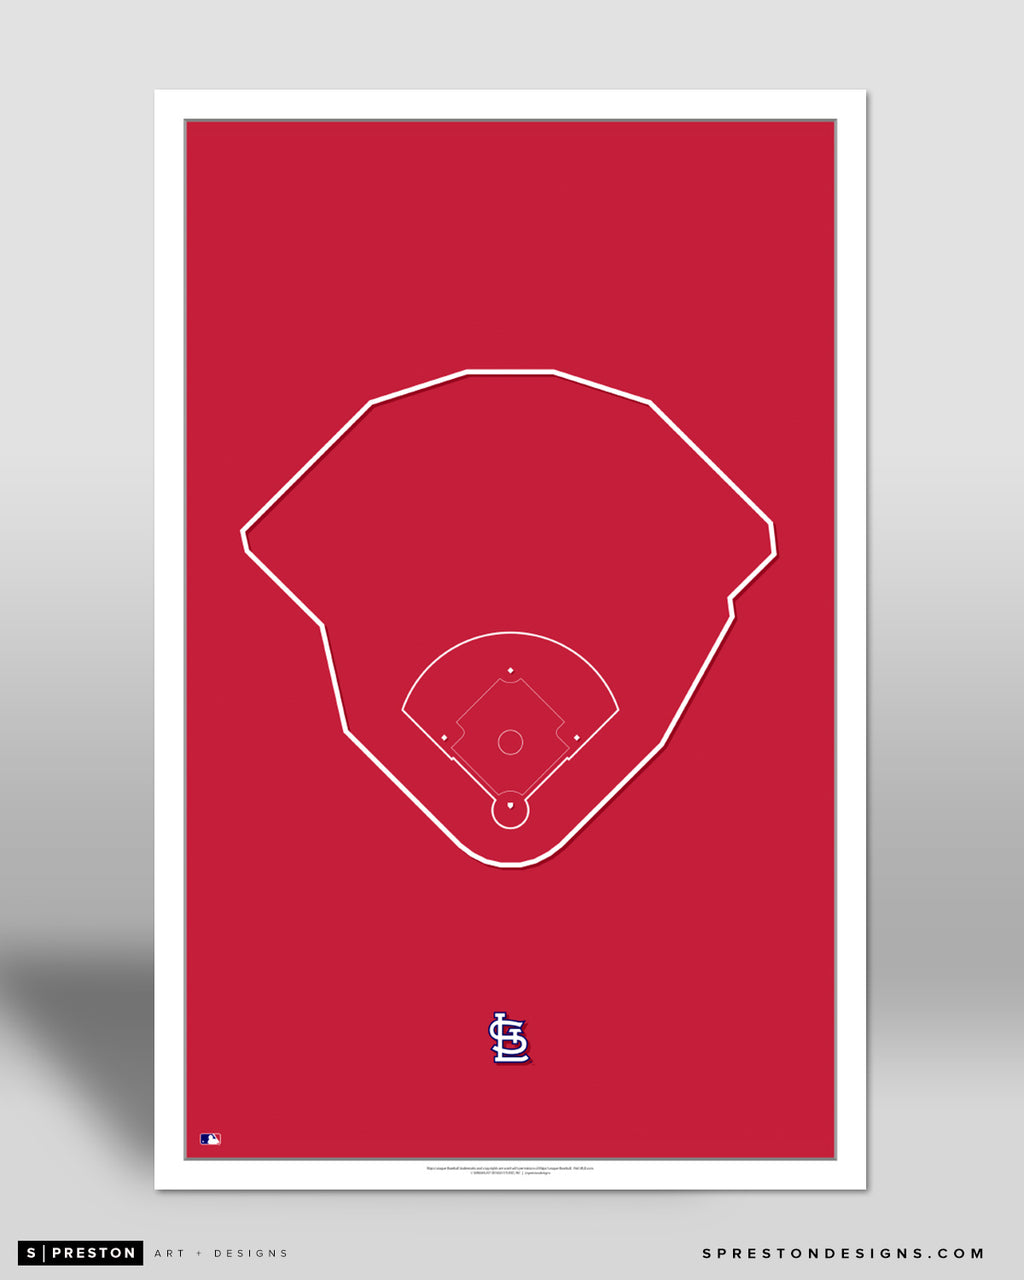 MLB Outline Ballpark - Busch Stadium St. Louis Cardinals - S Preston